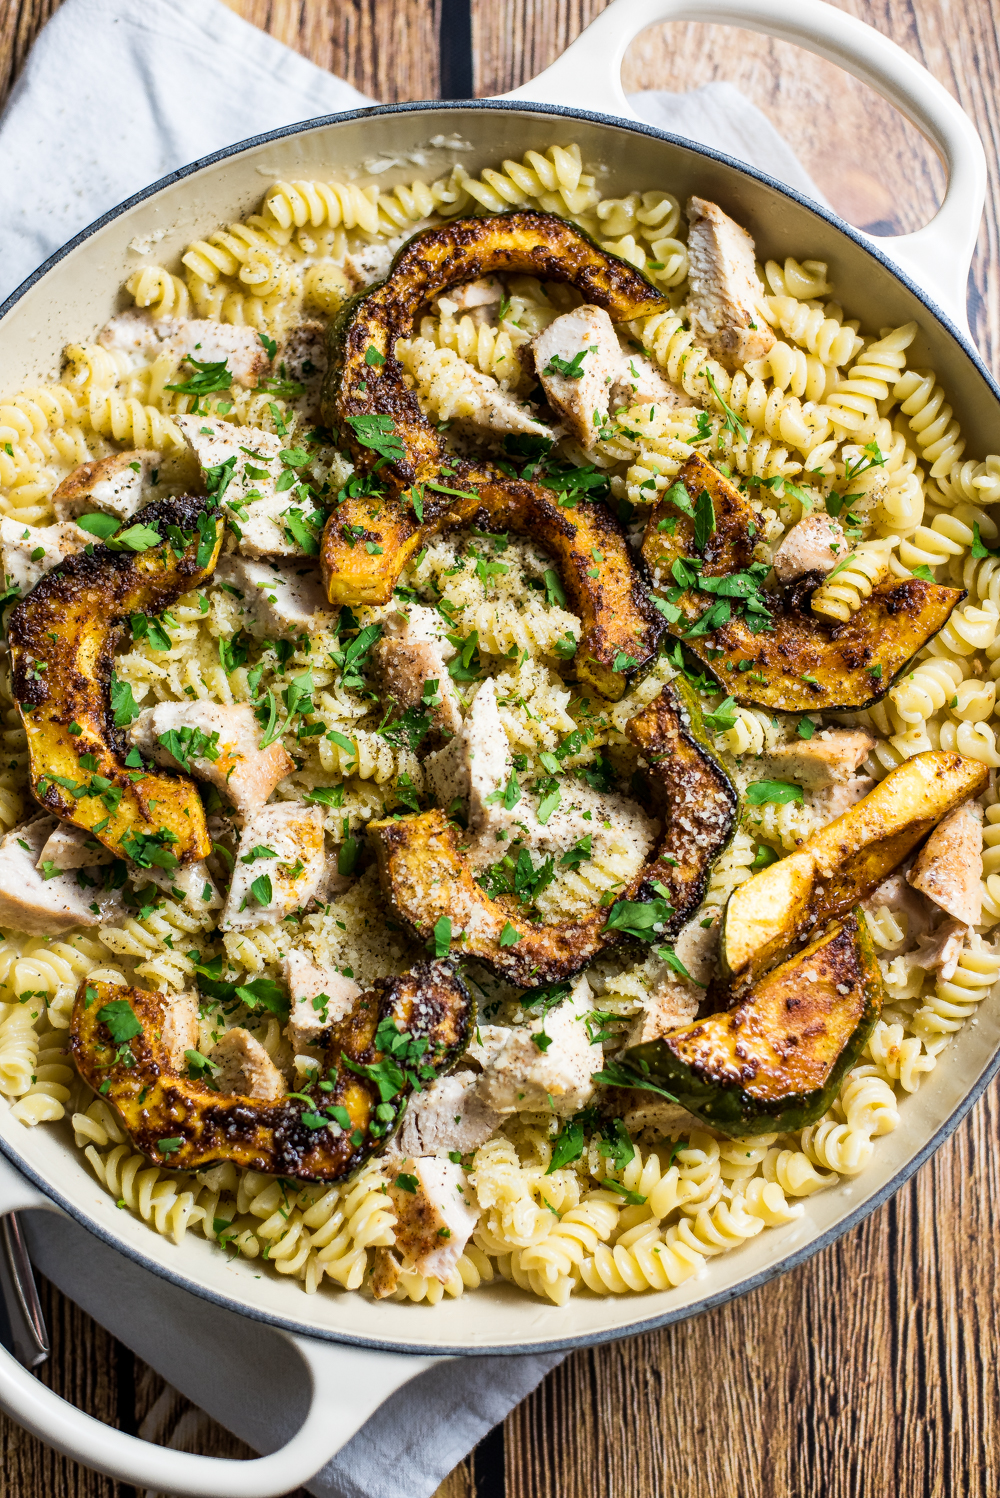 Chicken alfredo pasta with caramelized acorn squash is the perfect fall spin on traditional chicken alfredo. It's one big bowl of comfort!